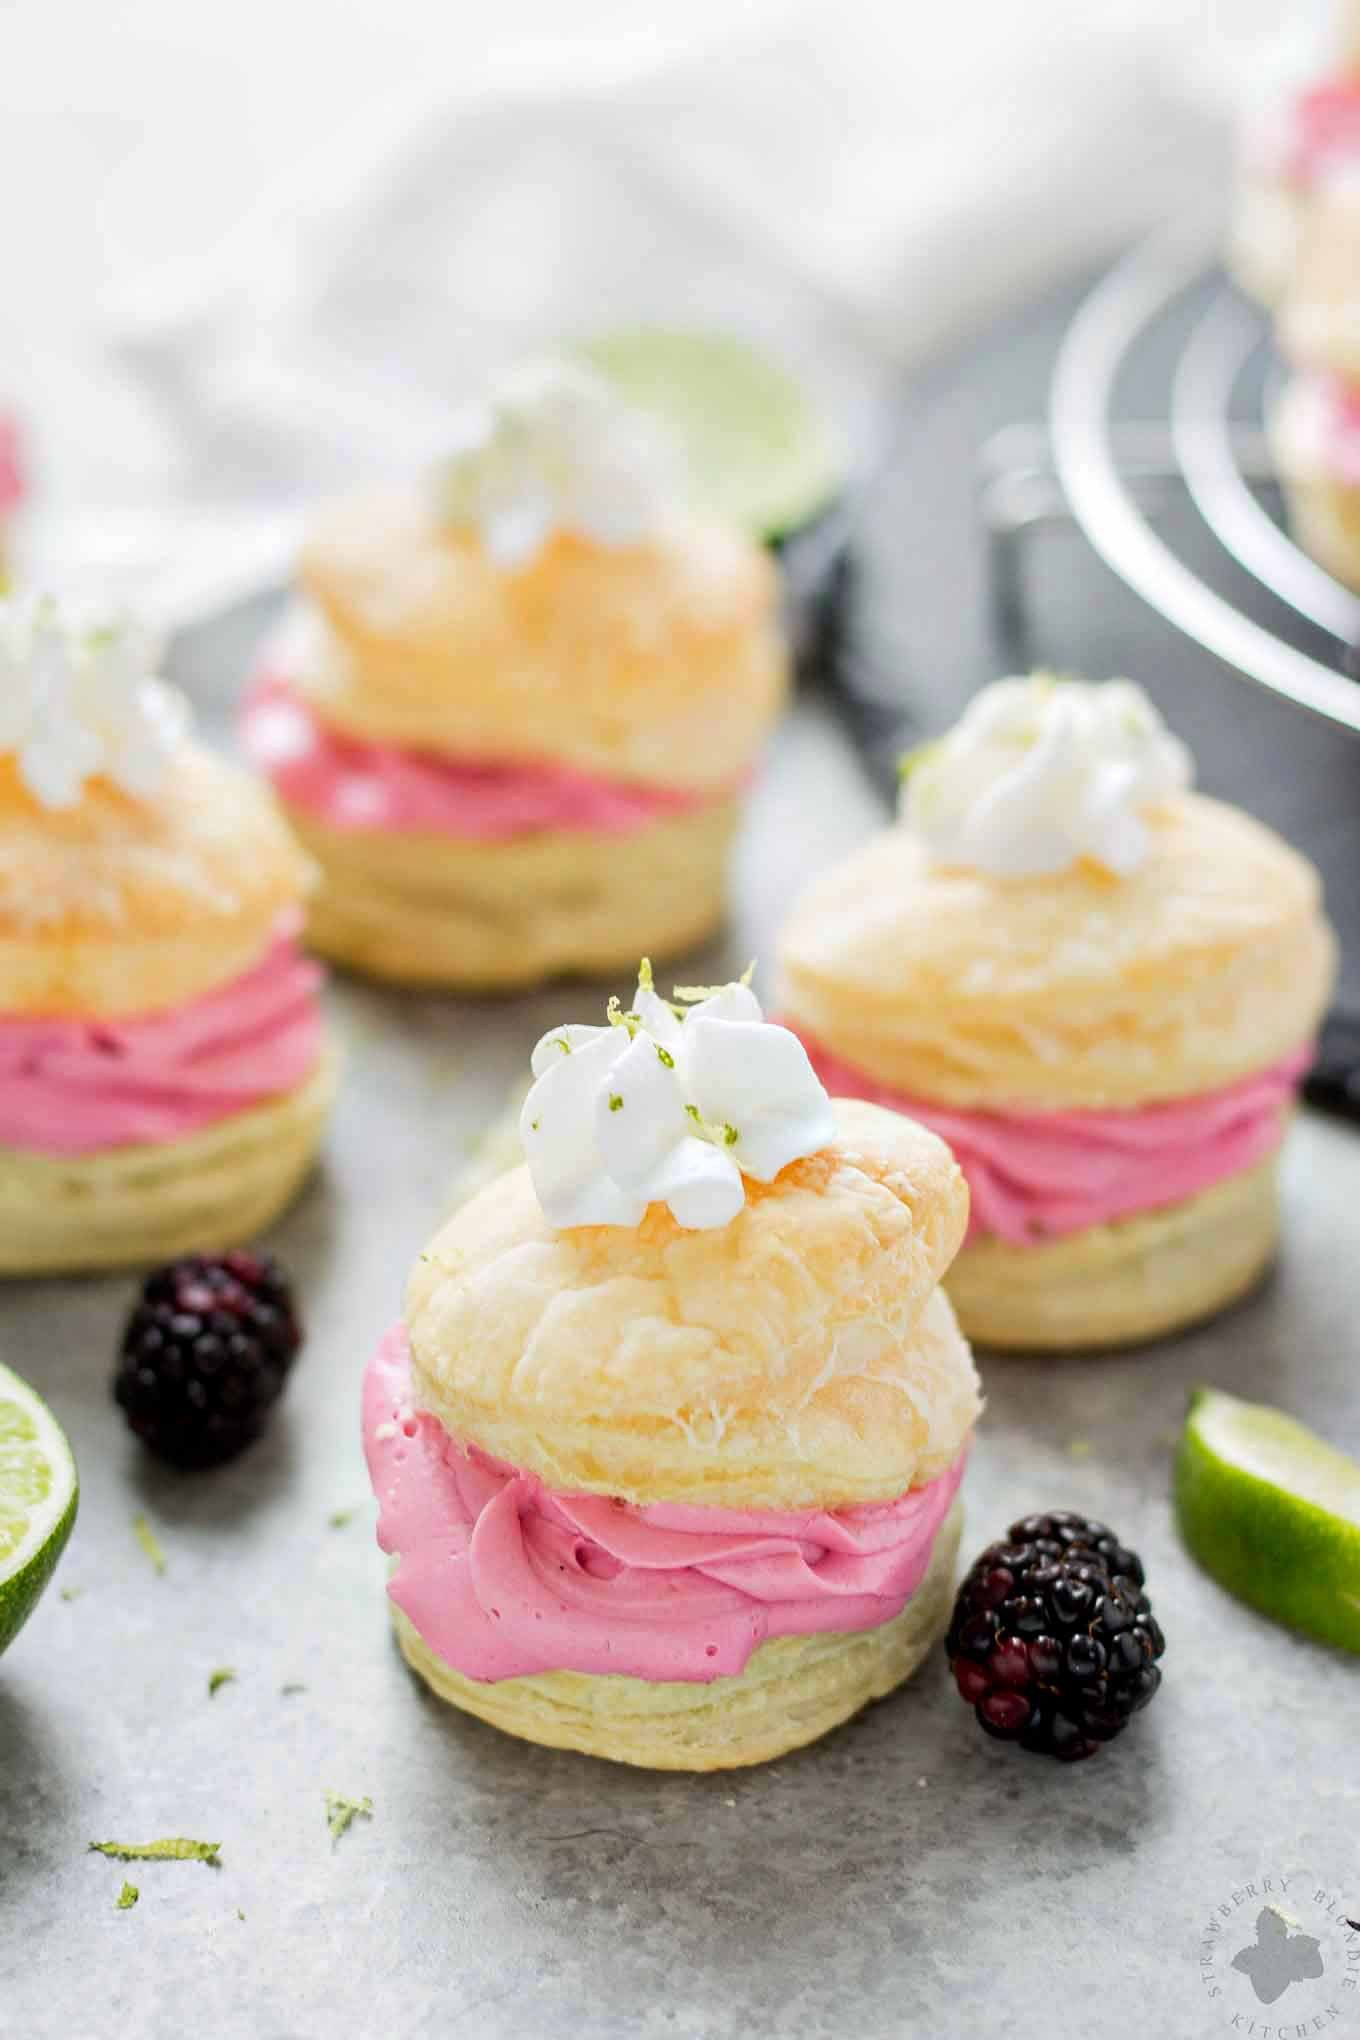 These elegant but simple, Blackberry Lime Buttercream Puffs are sweet, creamy and light. They're filled with a delicious homemade lime curd and fresh blackberry compote.